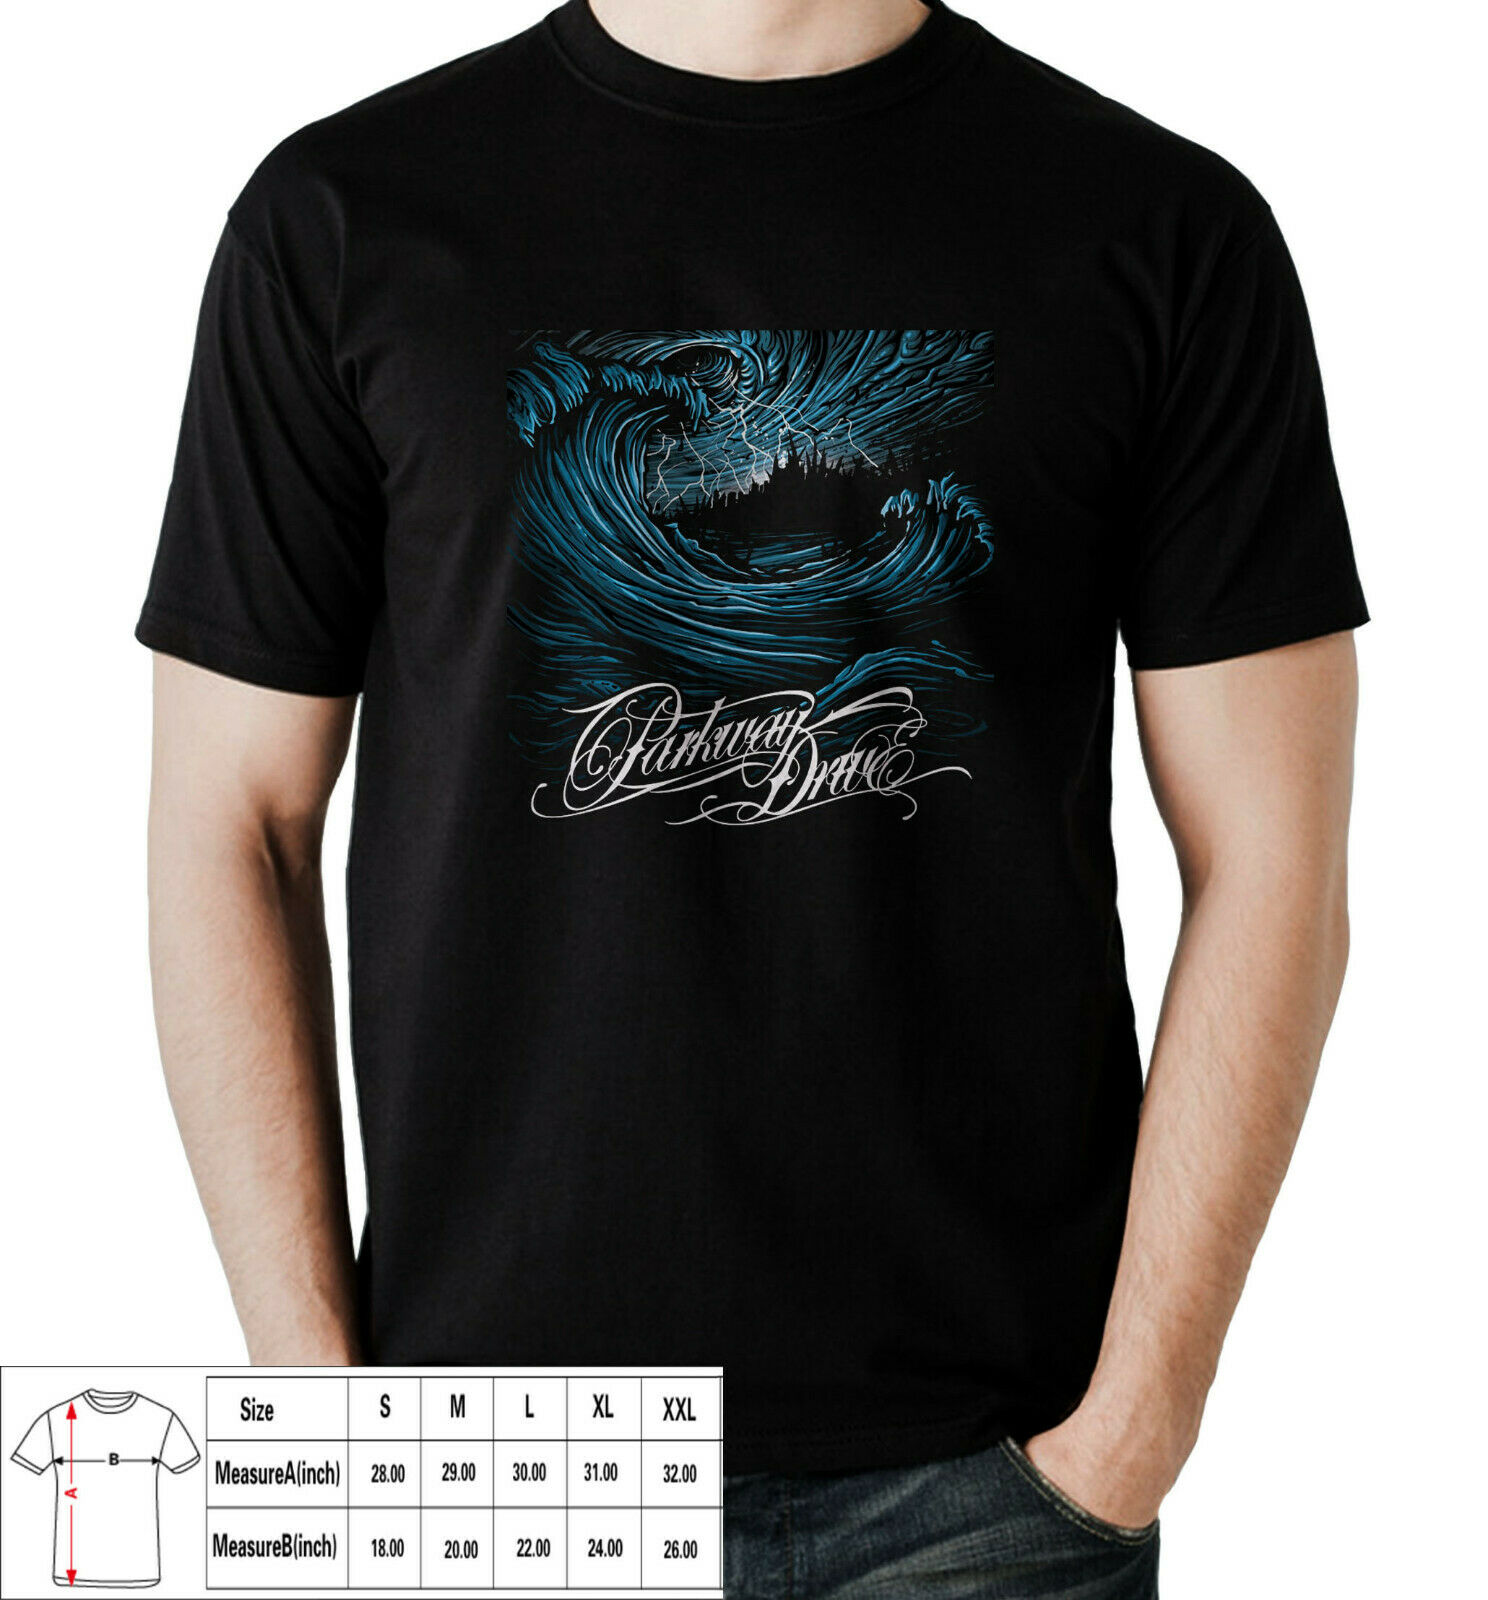 Parkway Drive Deep Blue metalcore band T-shirt For Men S-3XL ASIA Size Tee Shirt For Men O-Neck Tops Male image